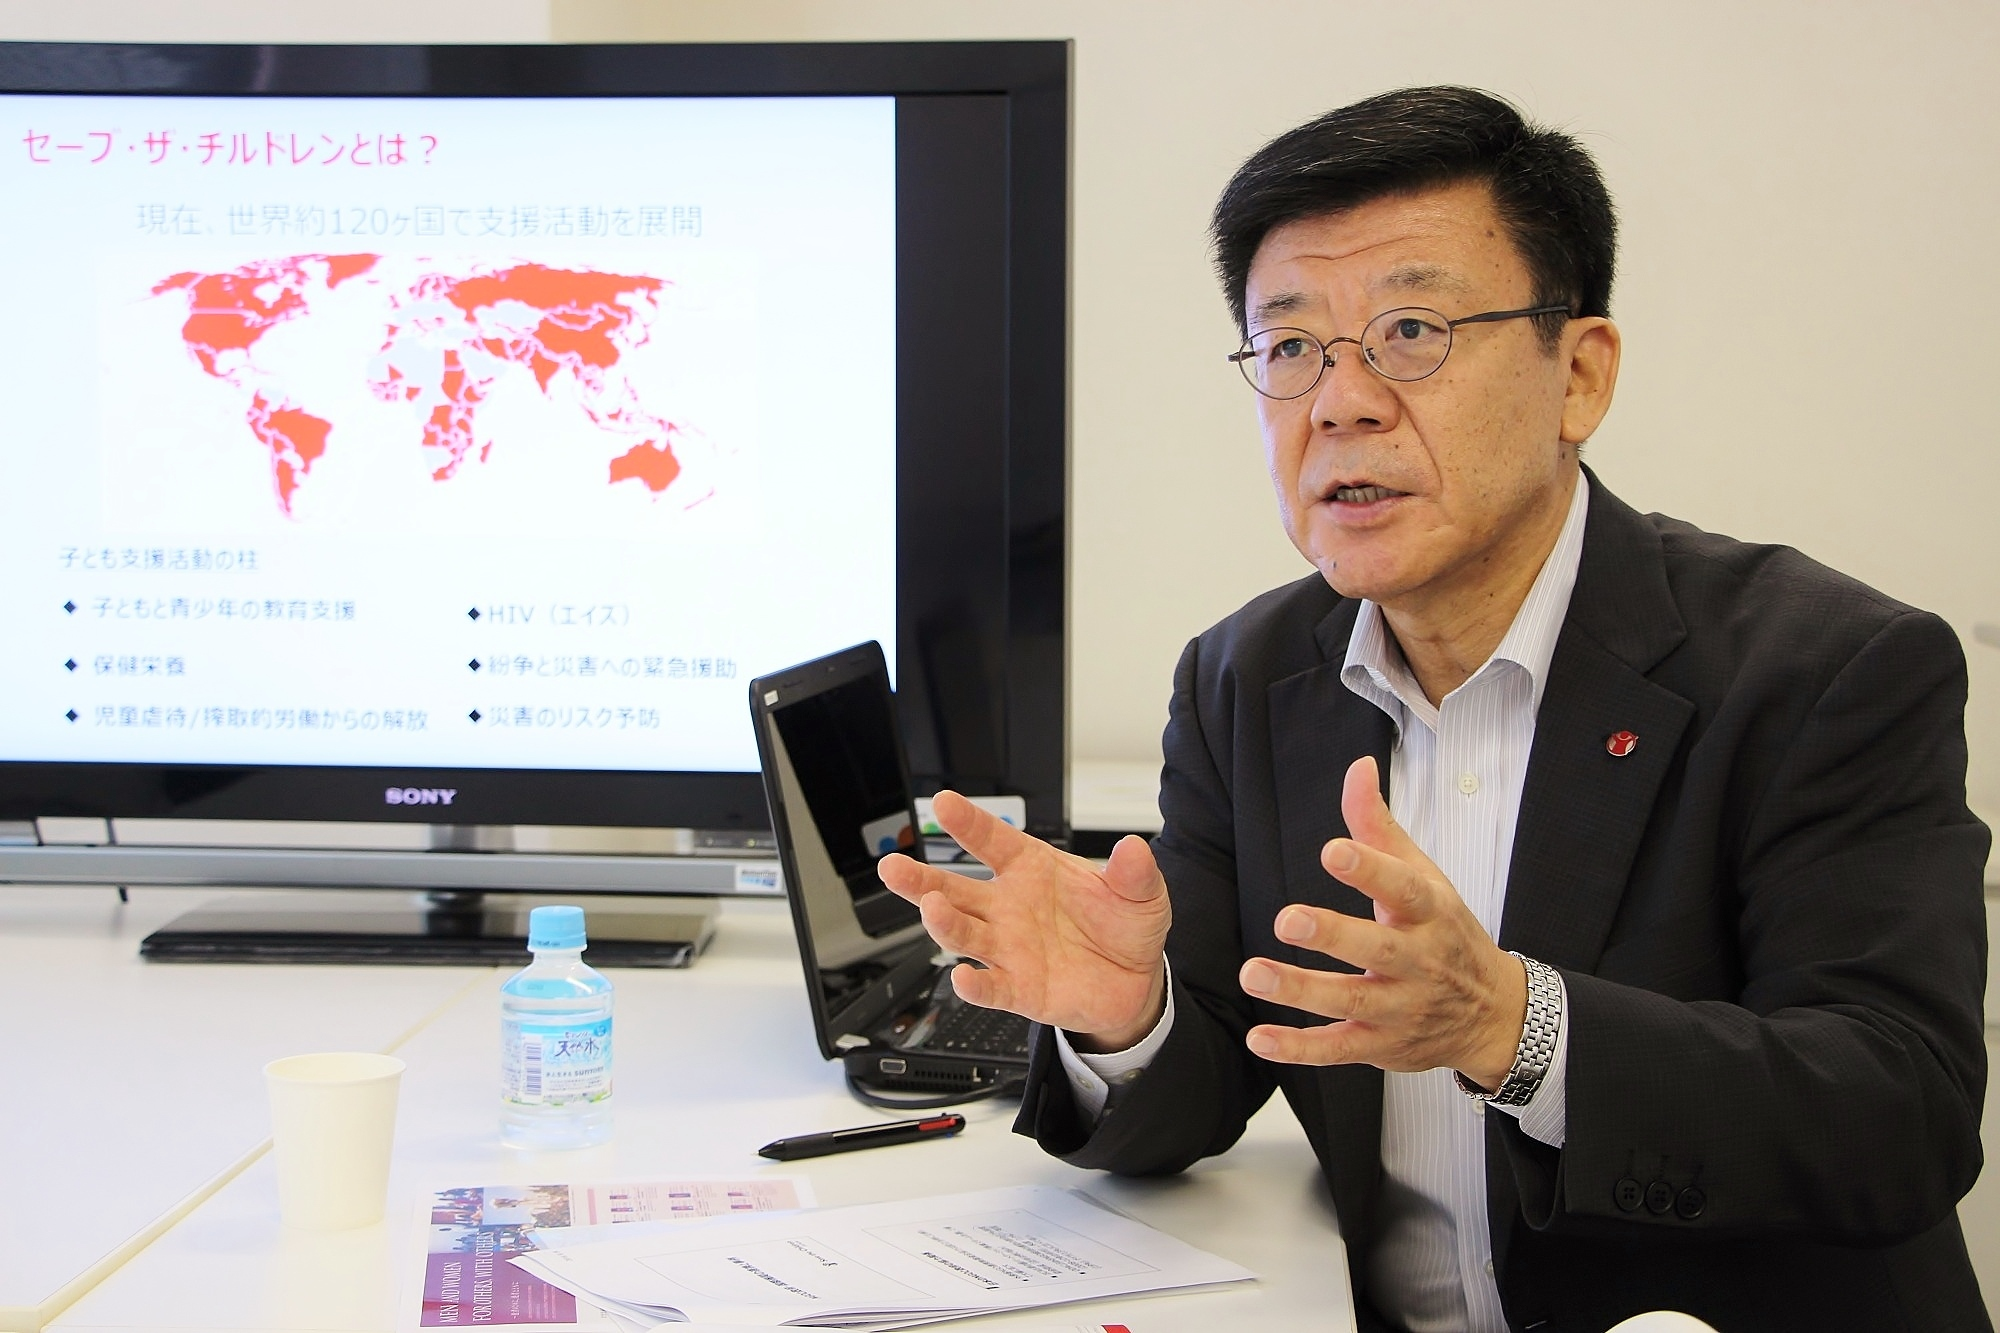 Interview: Mr. Kunio Senga, CEO of Save the Children Japan (SCJ)